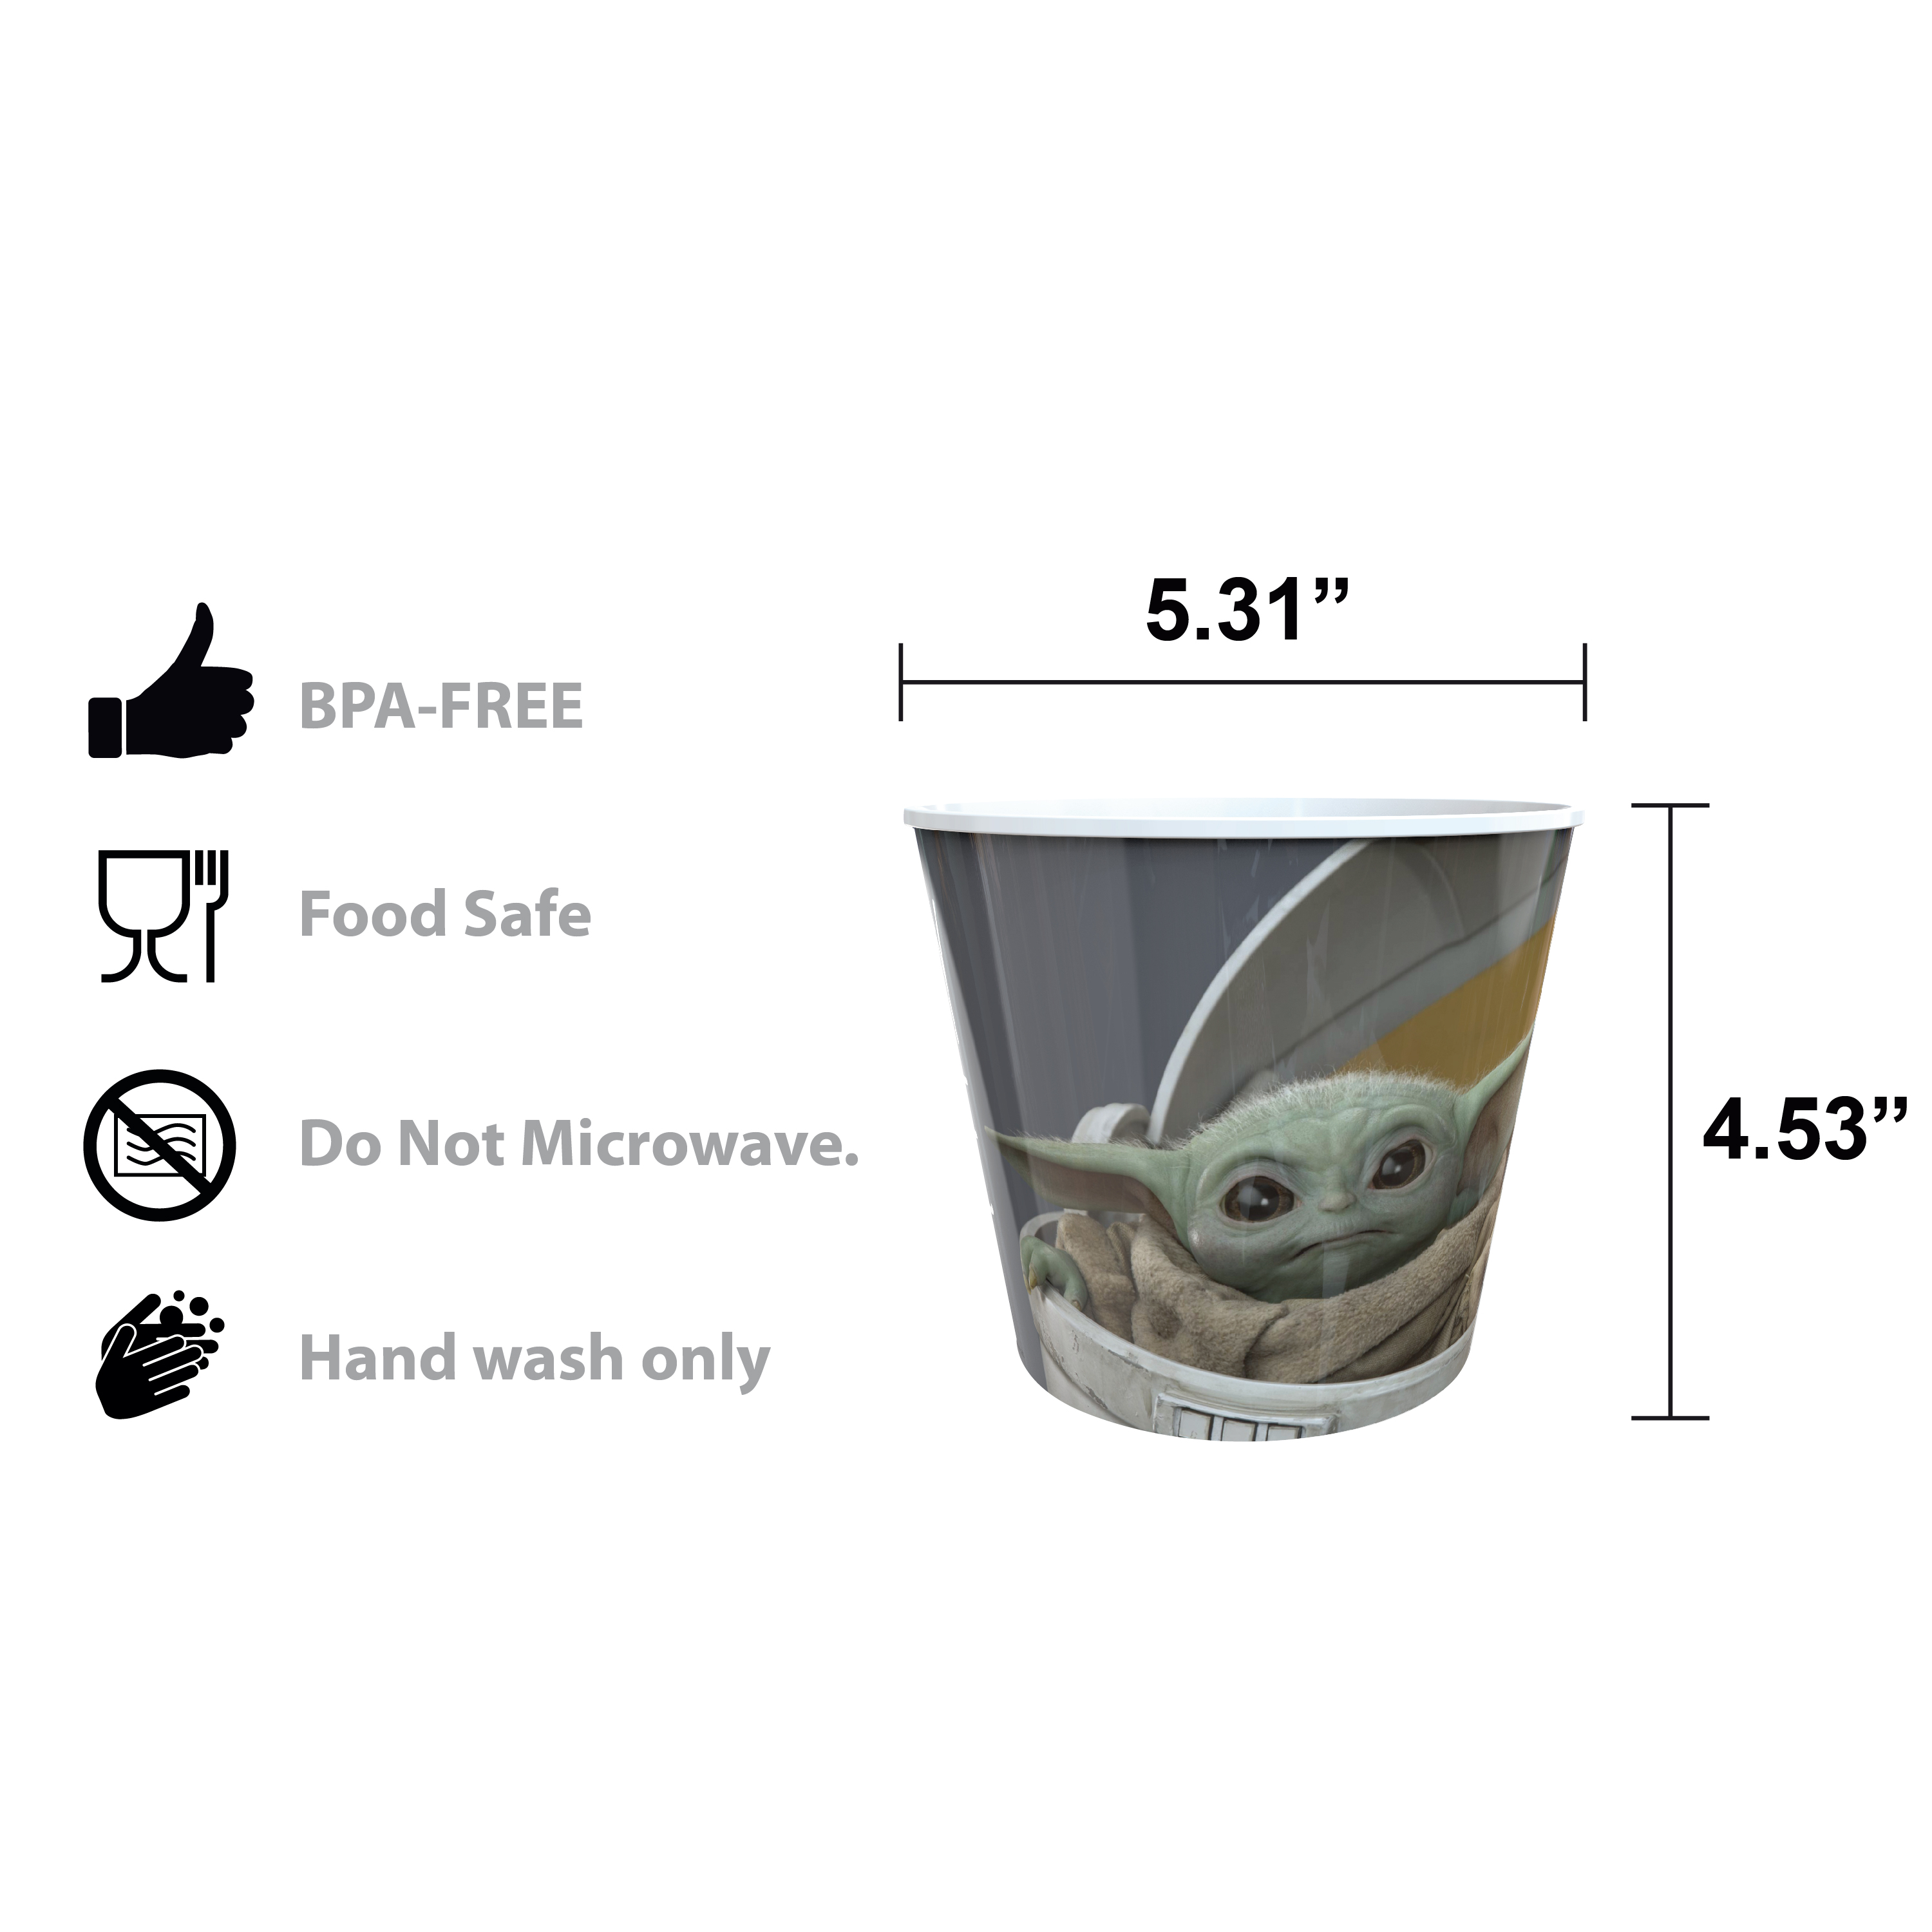 Star Wars: The Mandalorian Plastic Popcorn Container and Bowls, The Child (Baby Yoda), 5-piece set slideshow image 8